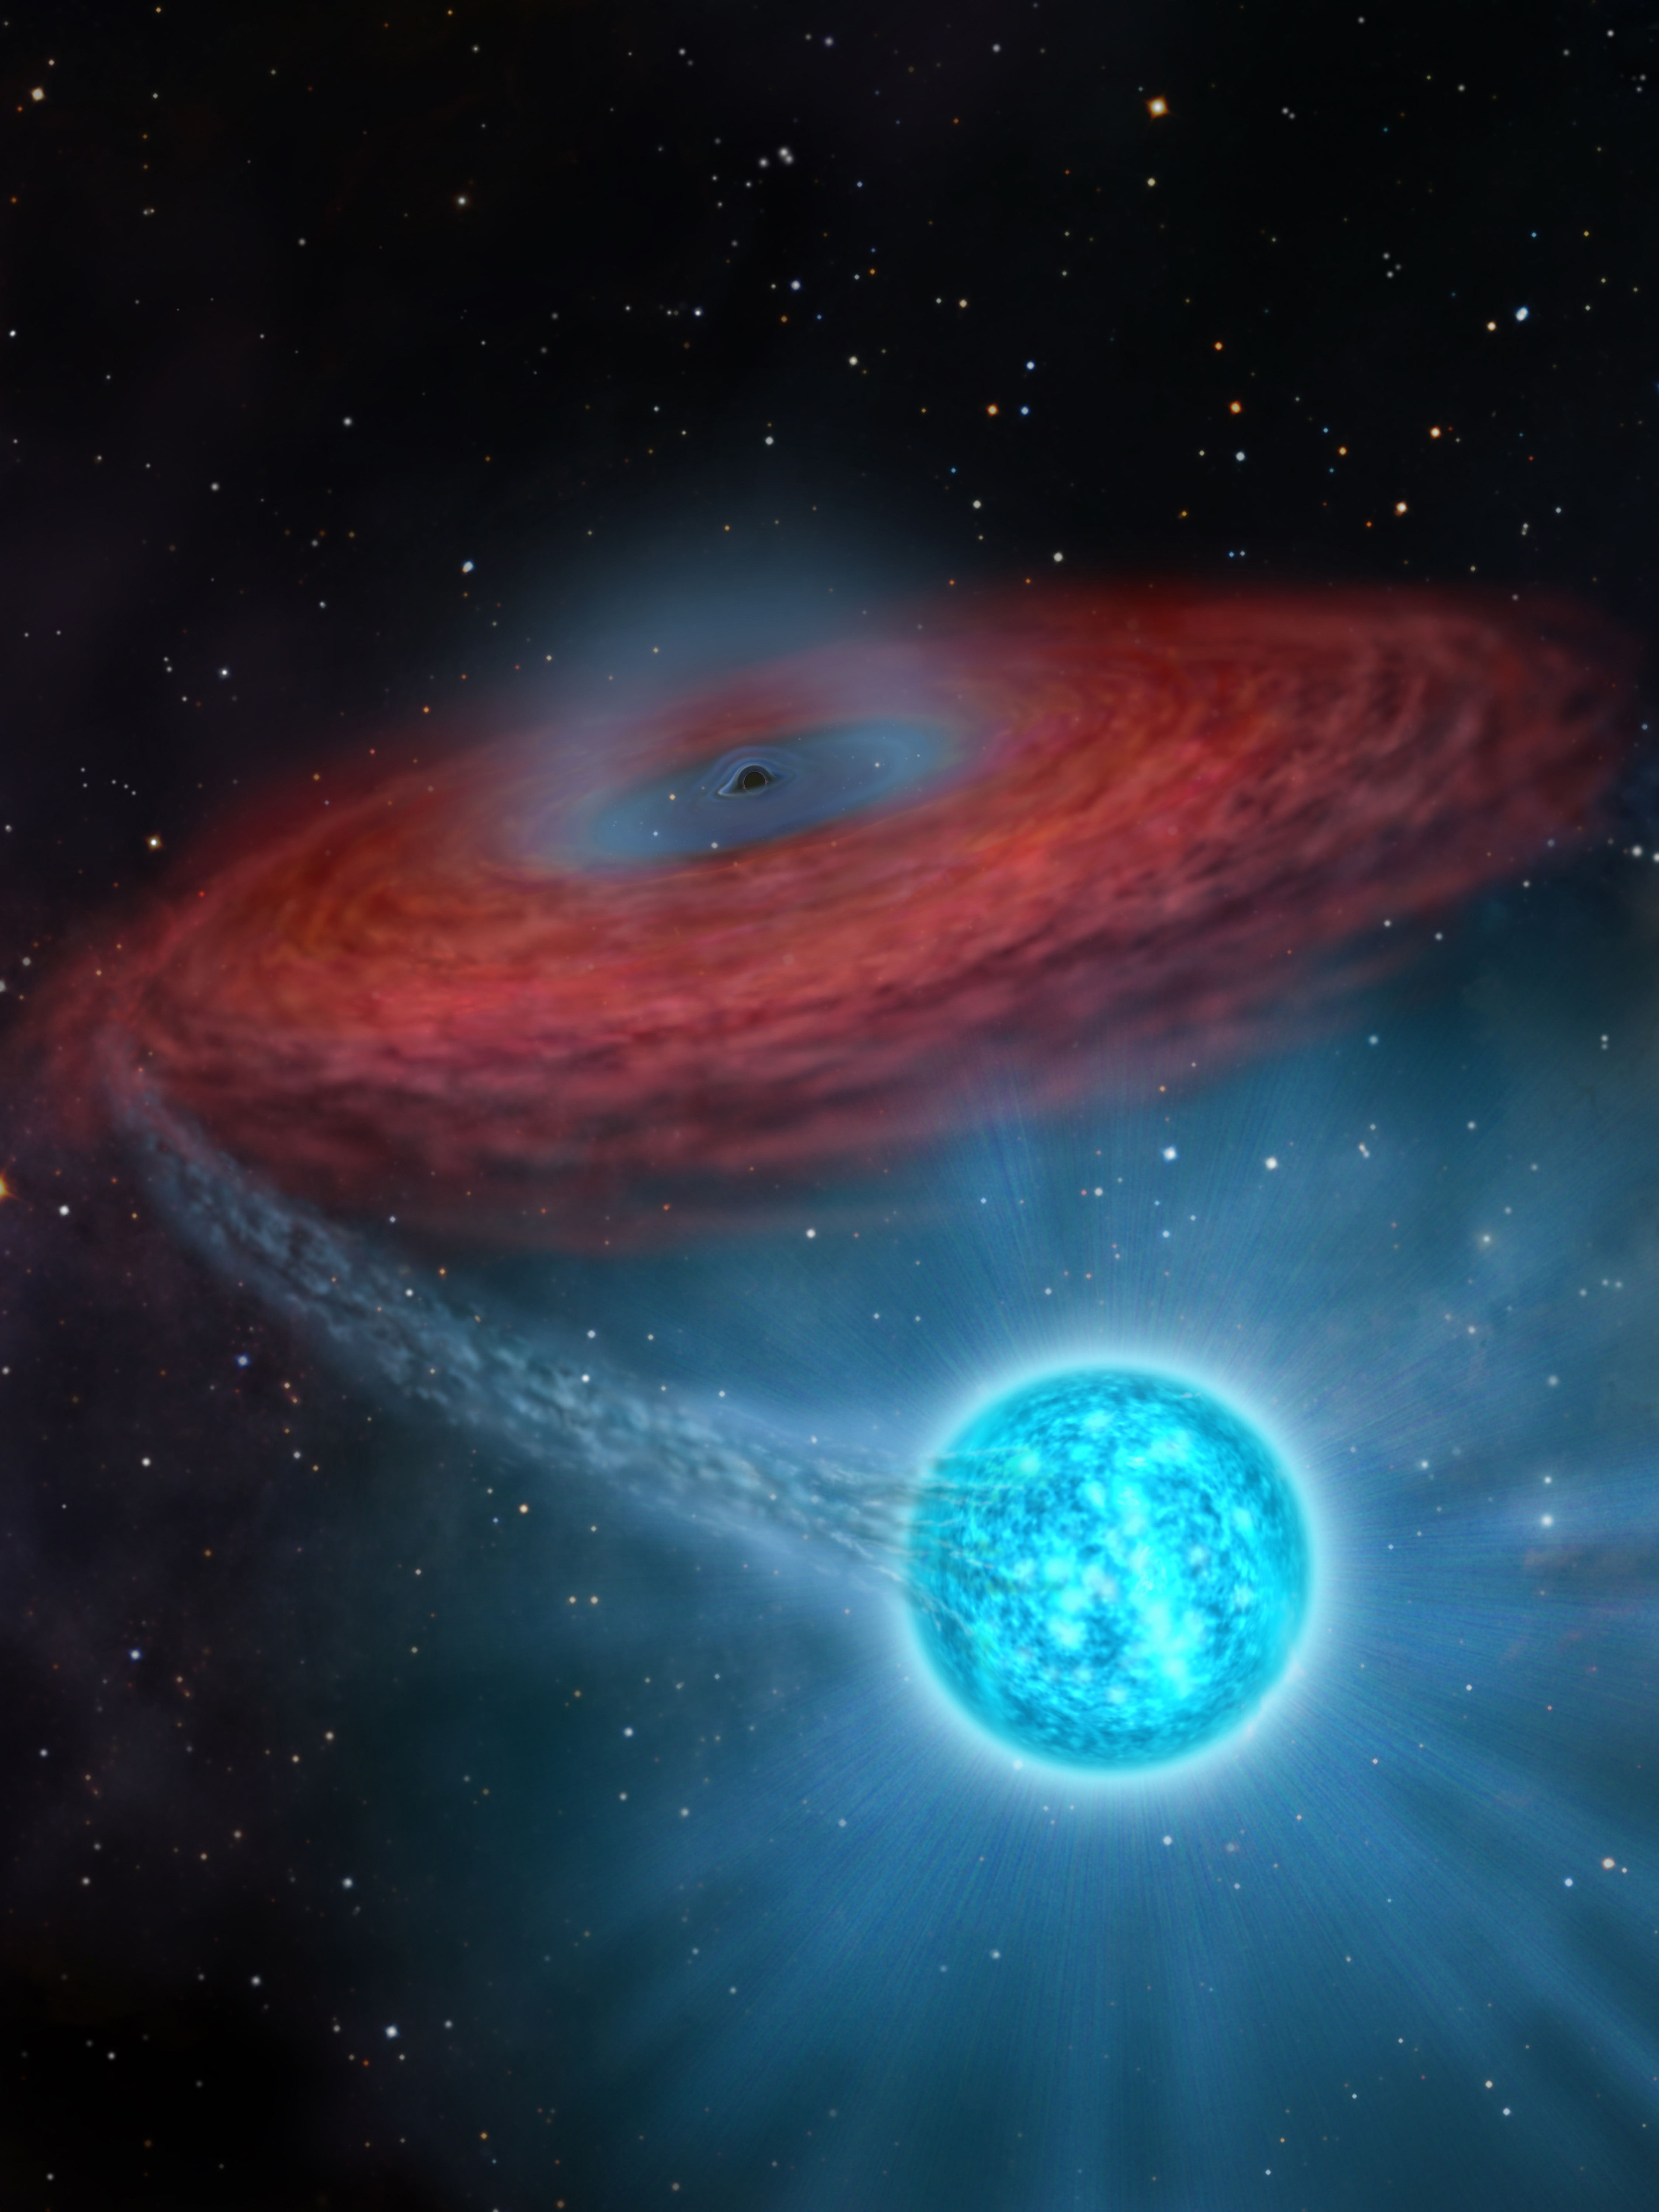 Massive Black Hole That 'Shouldn't Even Exist' Has Been Discovered